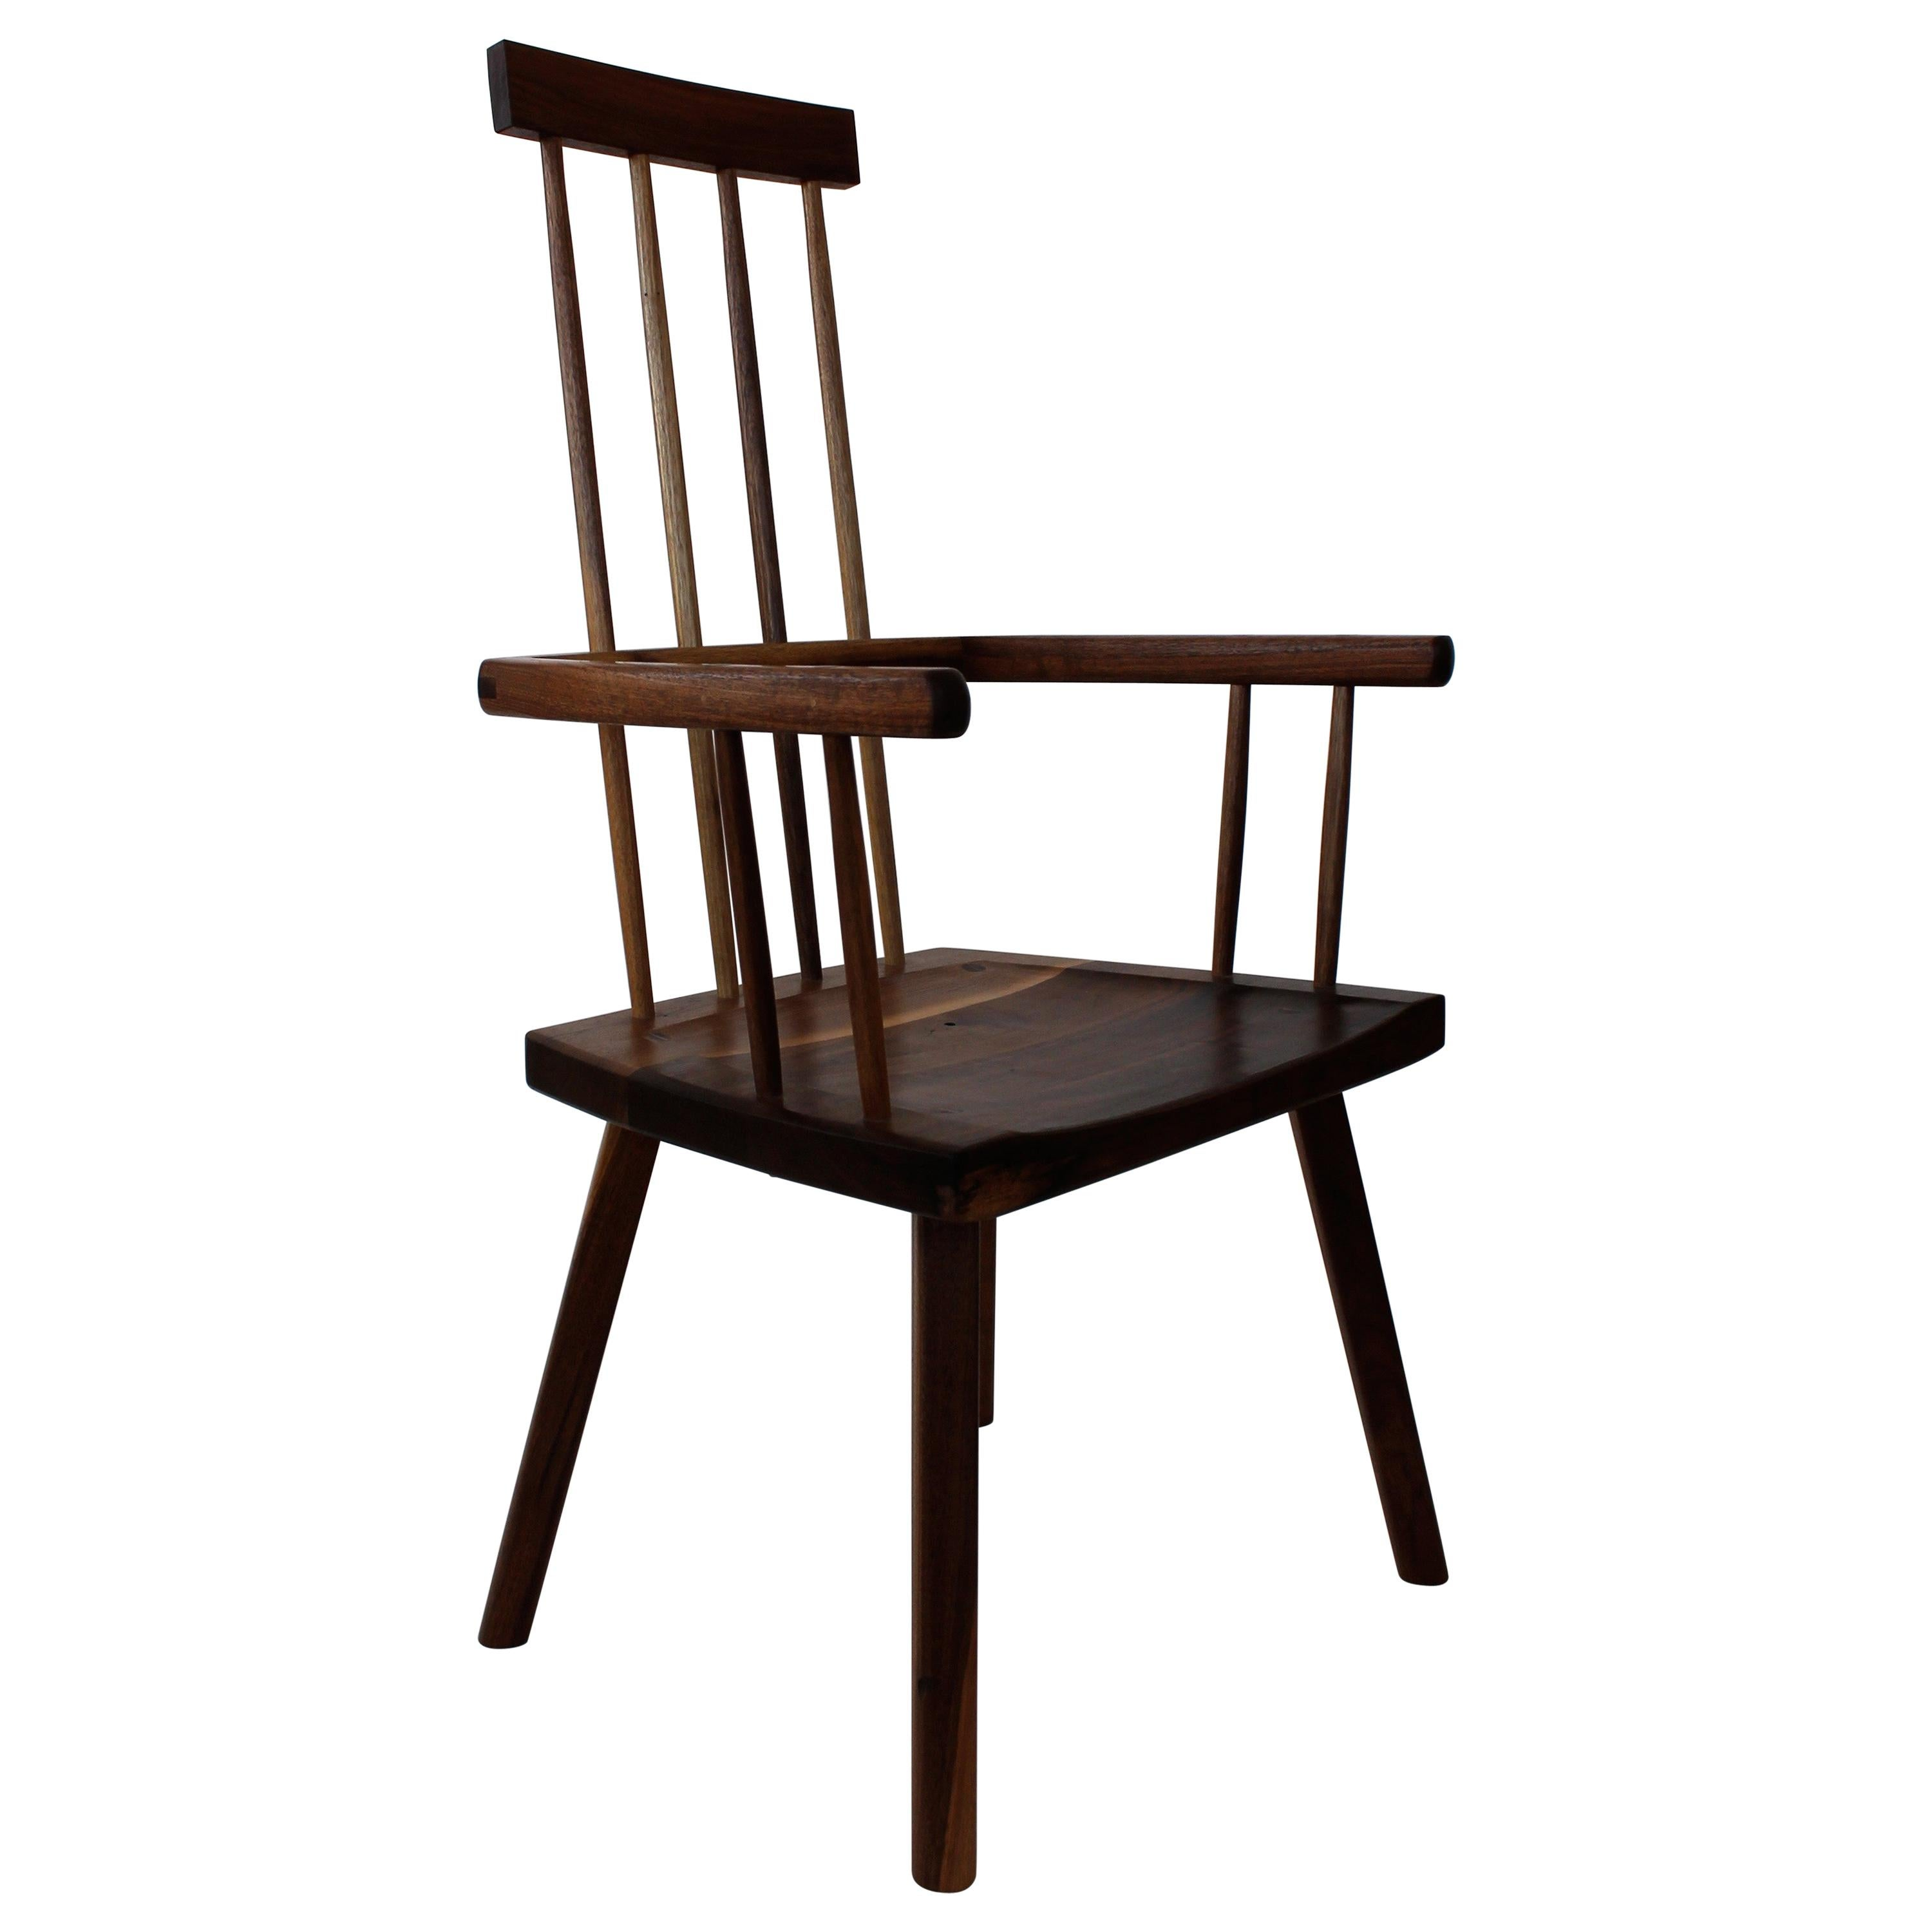 Beachcomber Spindle Back Chair in Walnut